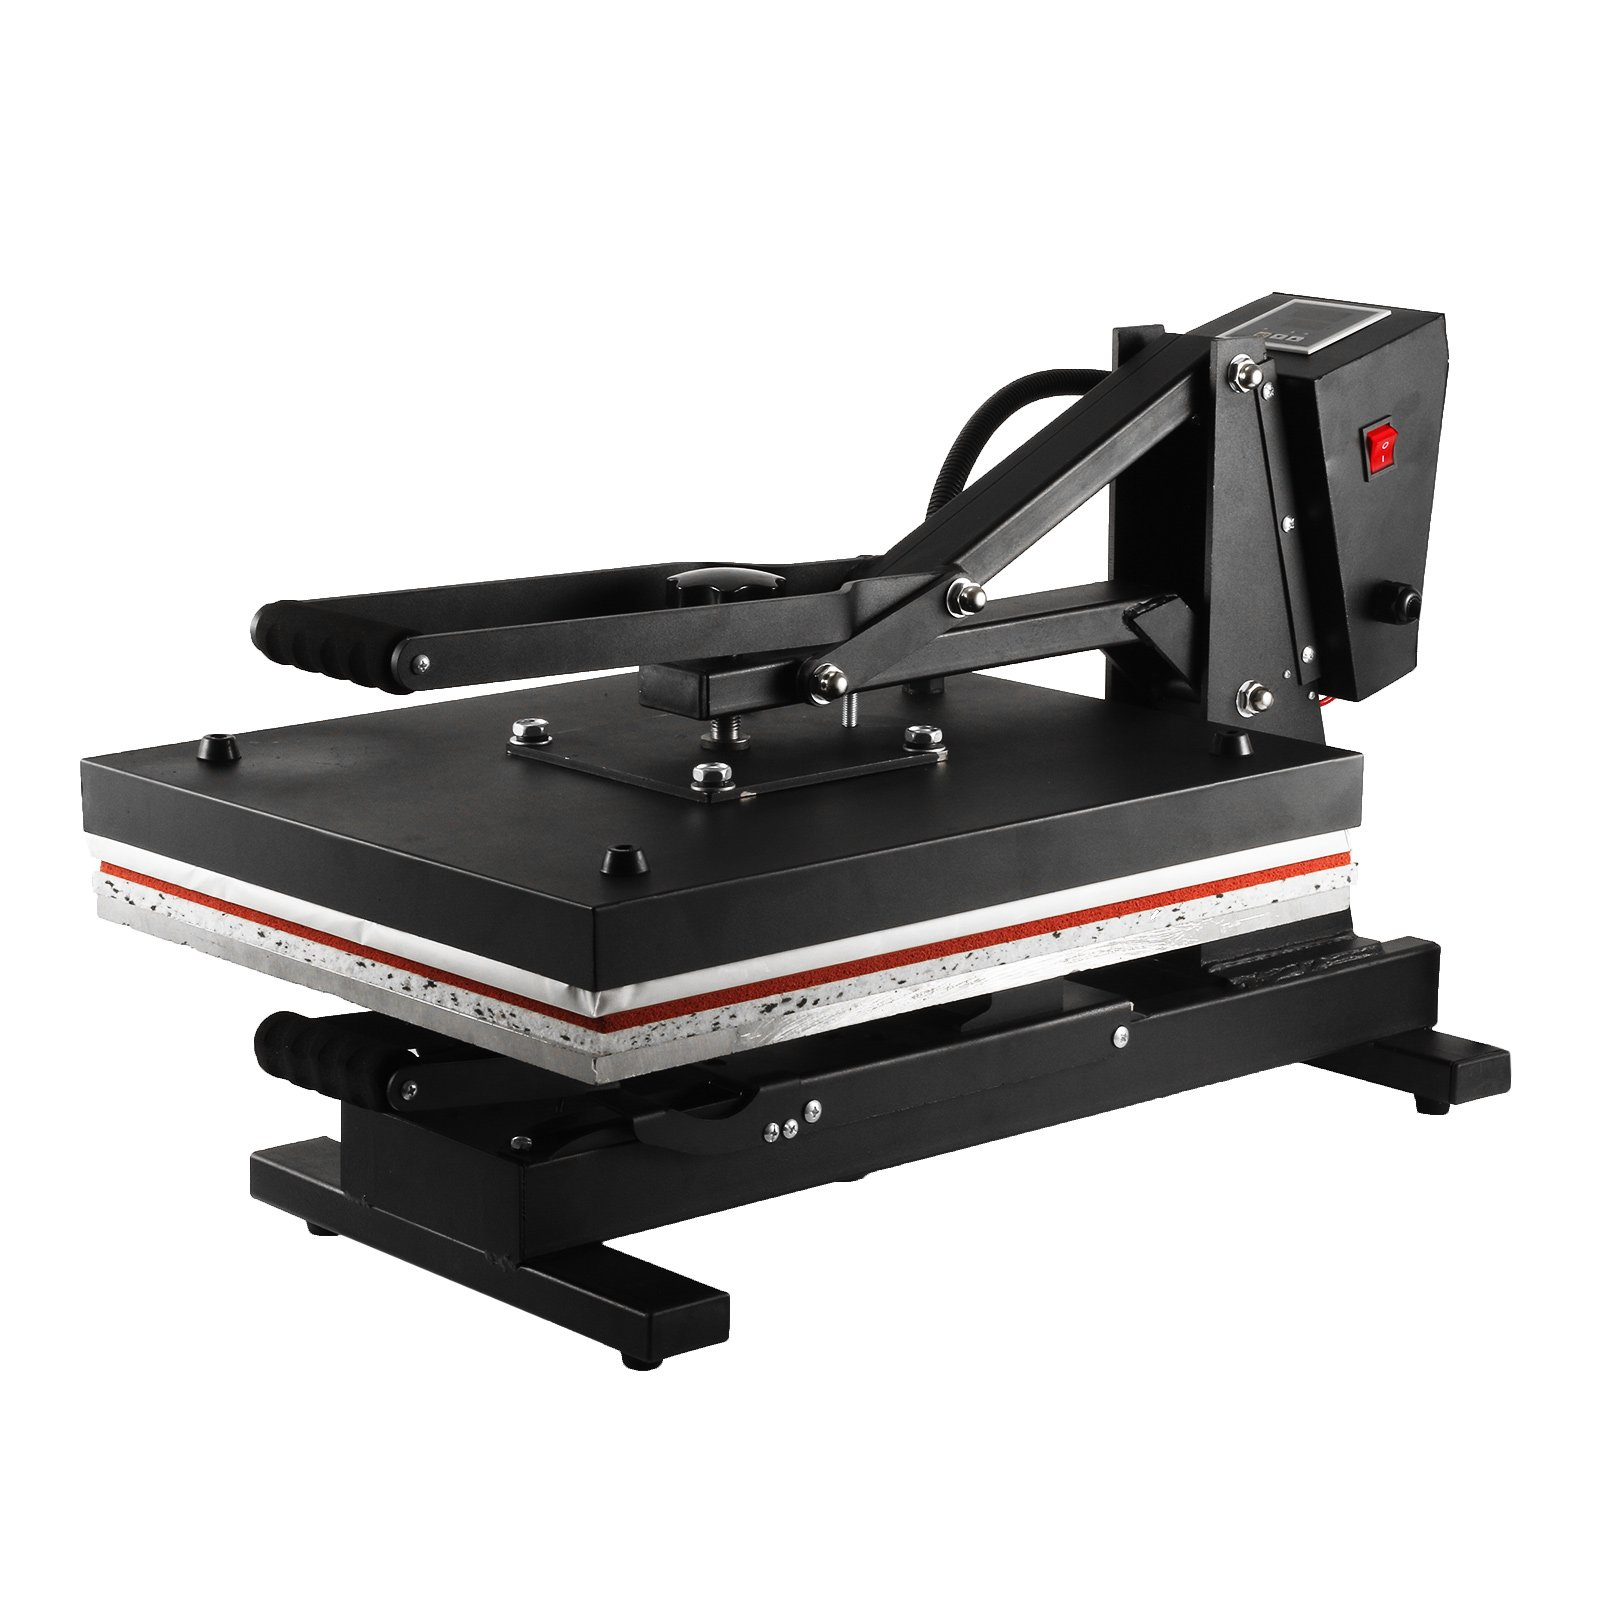 V-MACH Heat Press 16x20Inch Pull Out Style Heat Press Machine 1300W Heat Press Machine for T Shirts High Pressure Heavy Duty Commercial-grade (16x20Inch Pull Out Style) by V-MACH